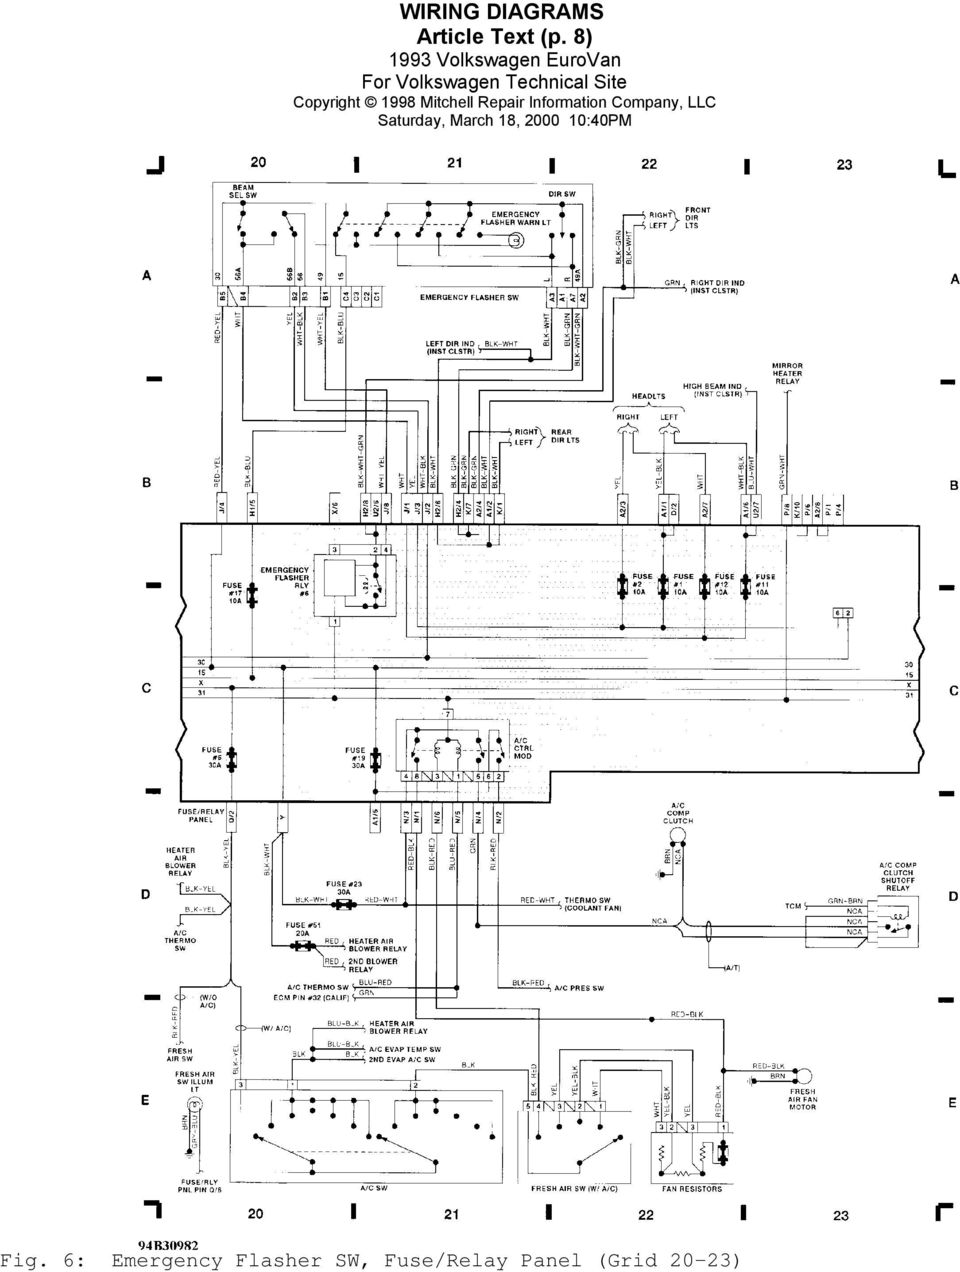 1993 Wiring Diagrams Volkswagen Eurovan 1990 Subaru Heater 6 Emergency